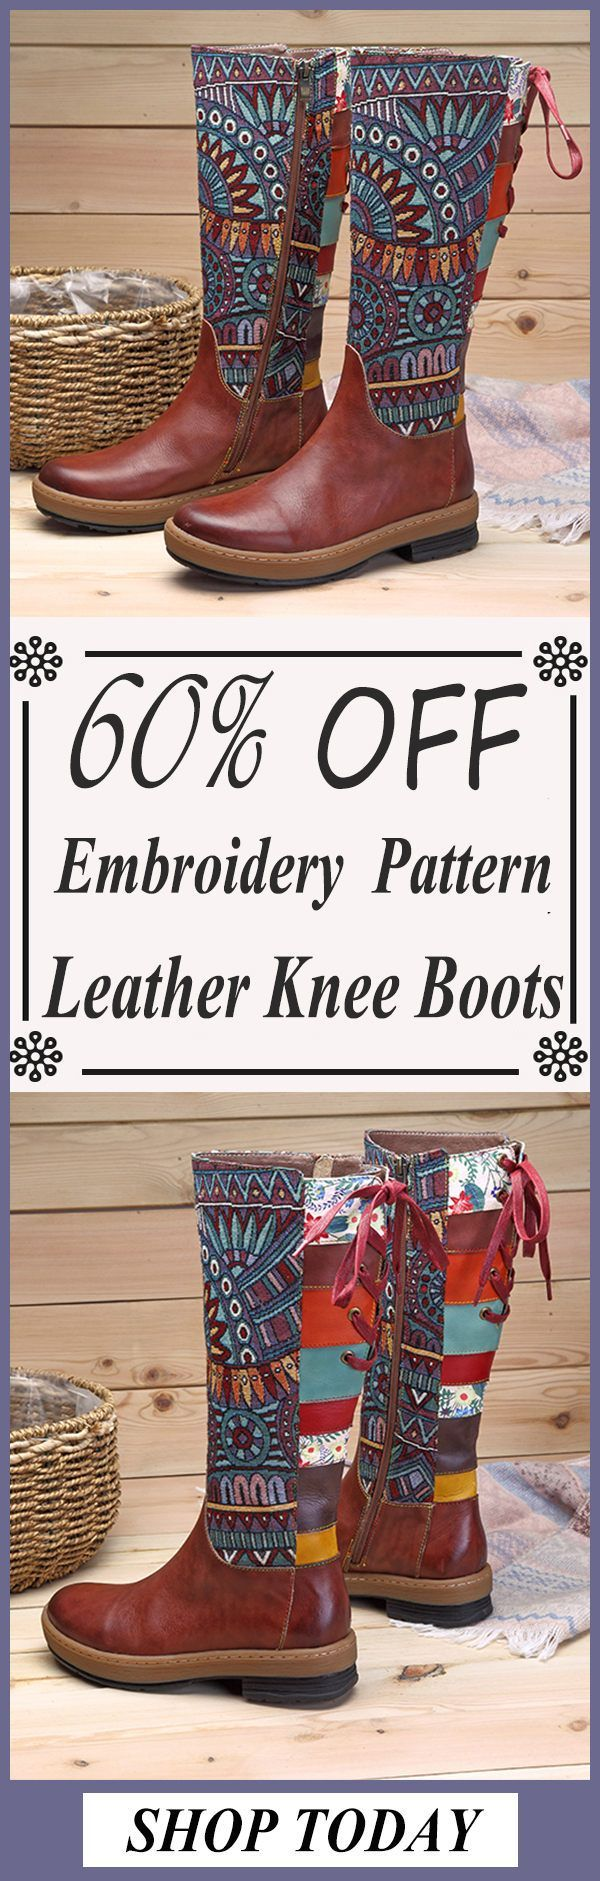 SOCOFY Embroidery Splicing Pattern Flat Leather Knee Boots#coffee #boots #valentinesday